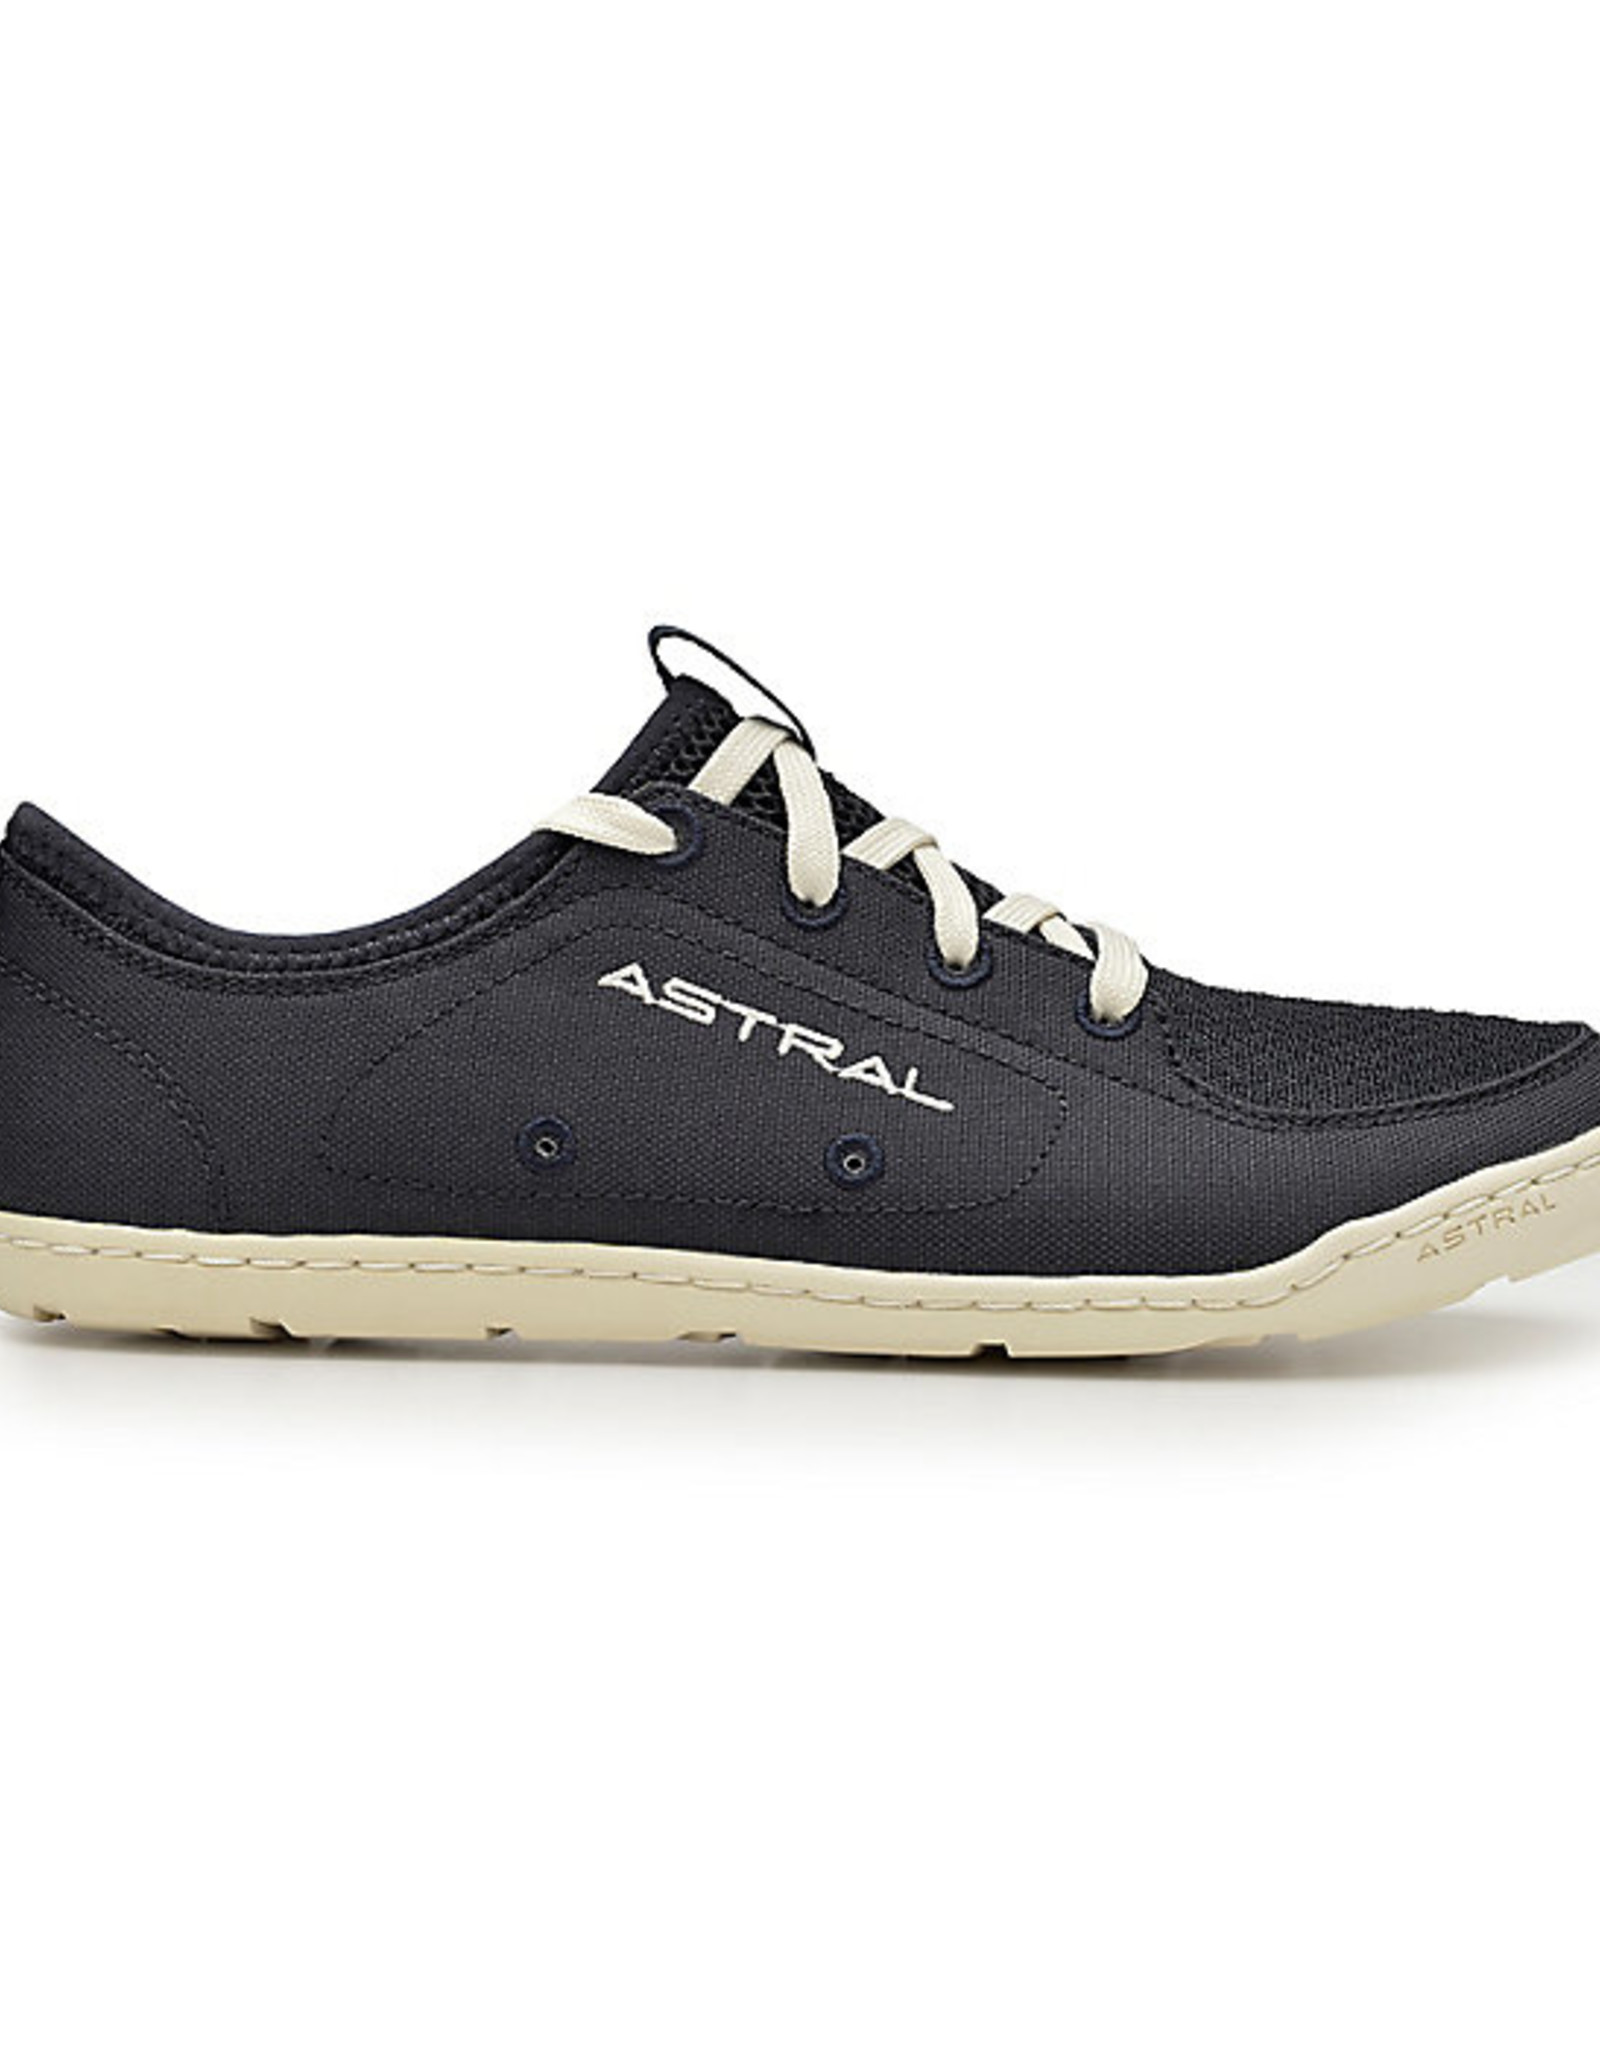 Astral WOMEN'S ASTRAL LOYAK WATER SHOE-NAVY/WHITE